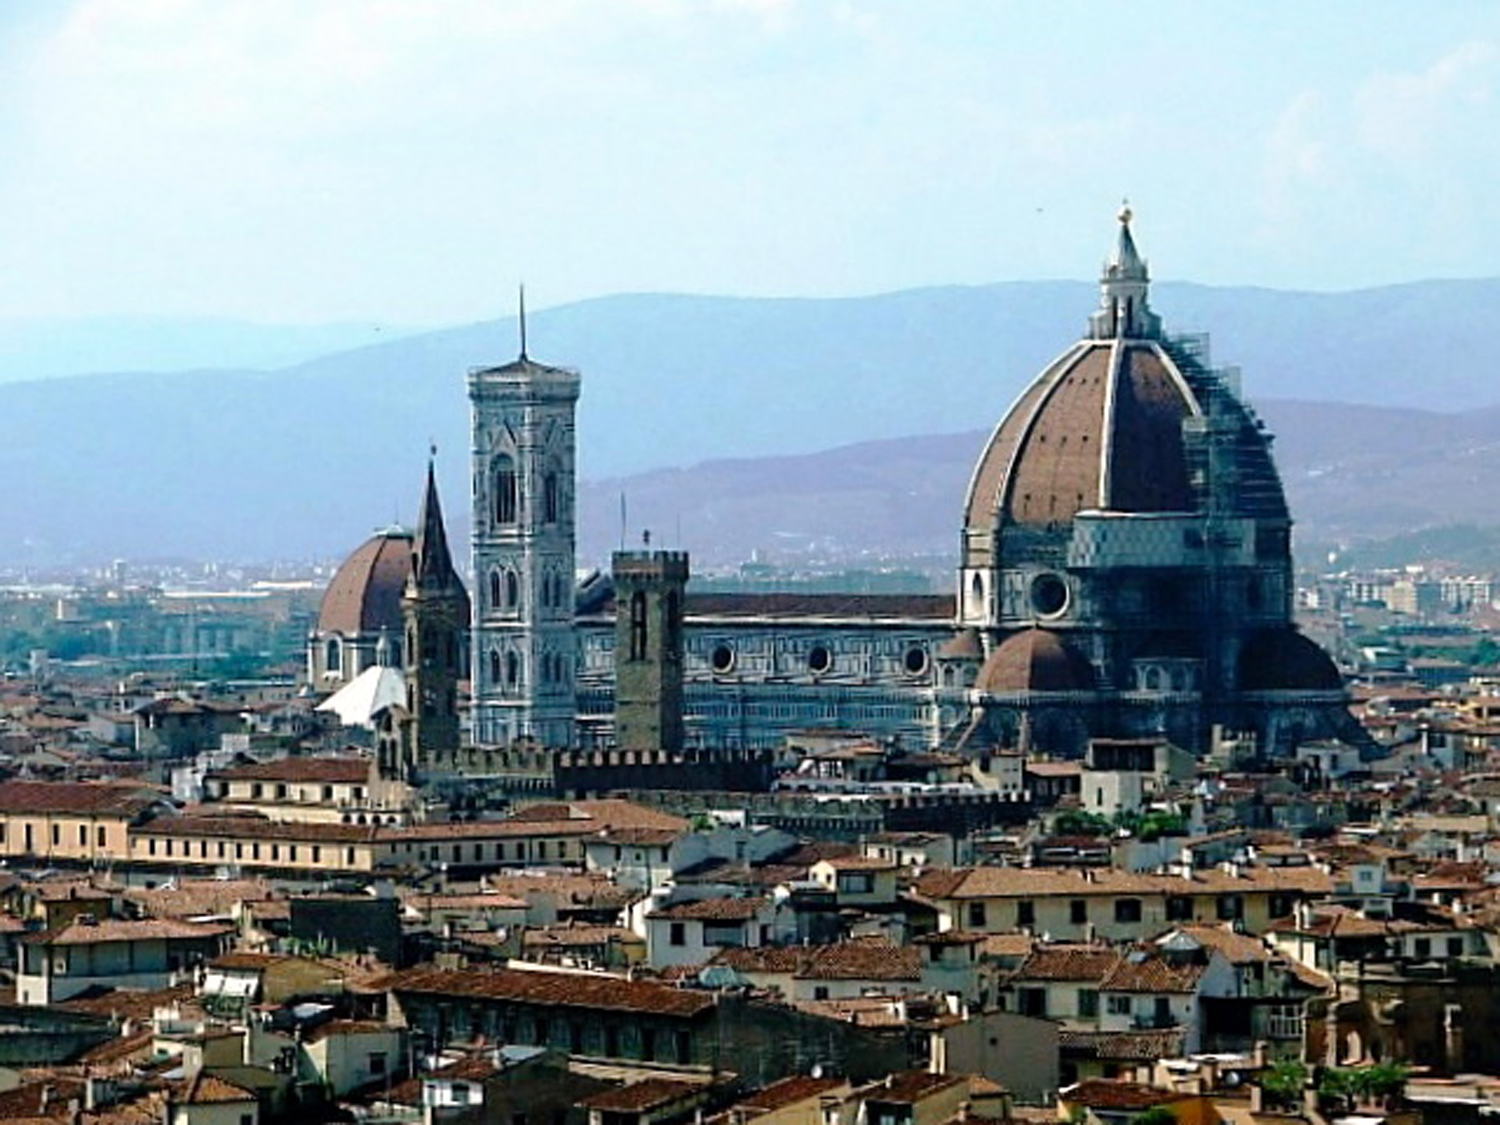 The Florence Cathedral in Florence, Italy. (Image via Wikimedia Commons)